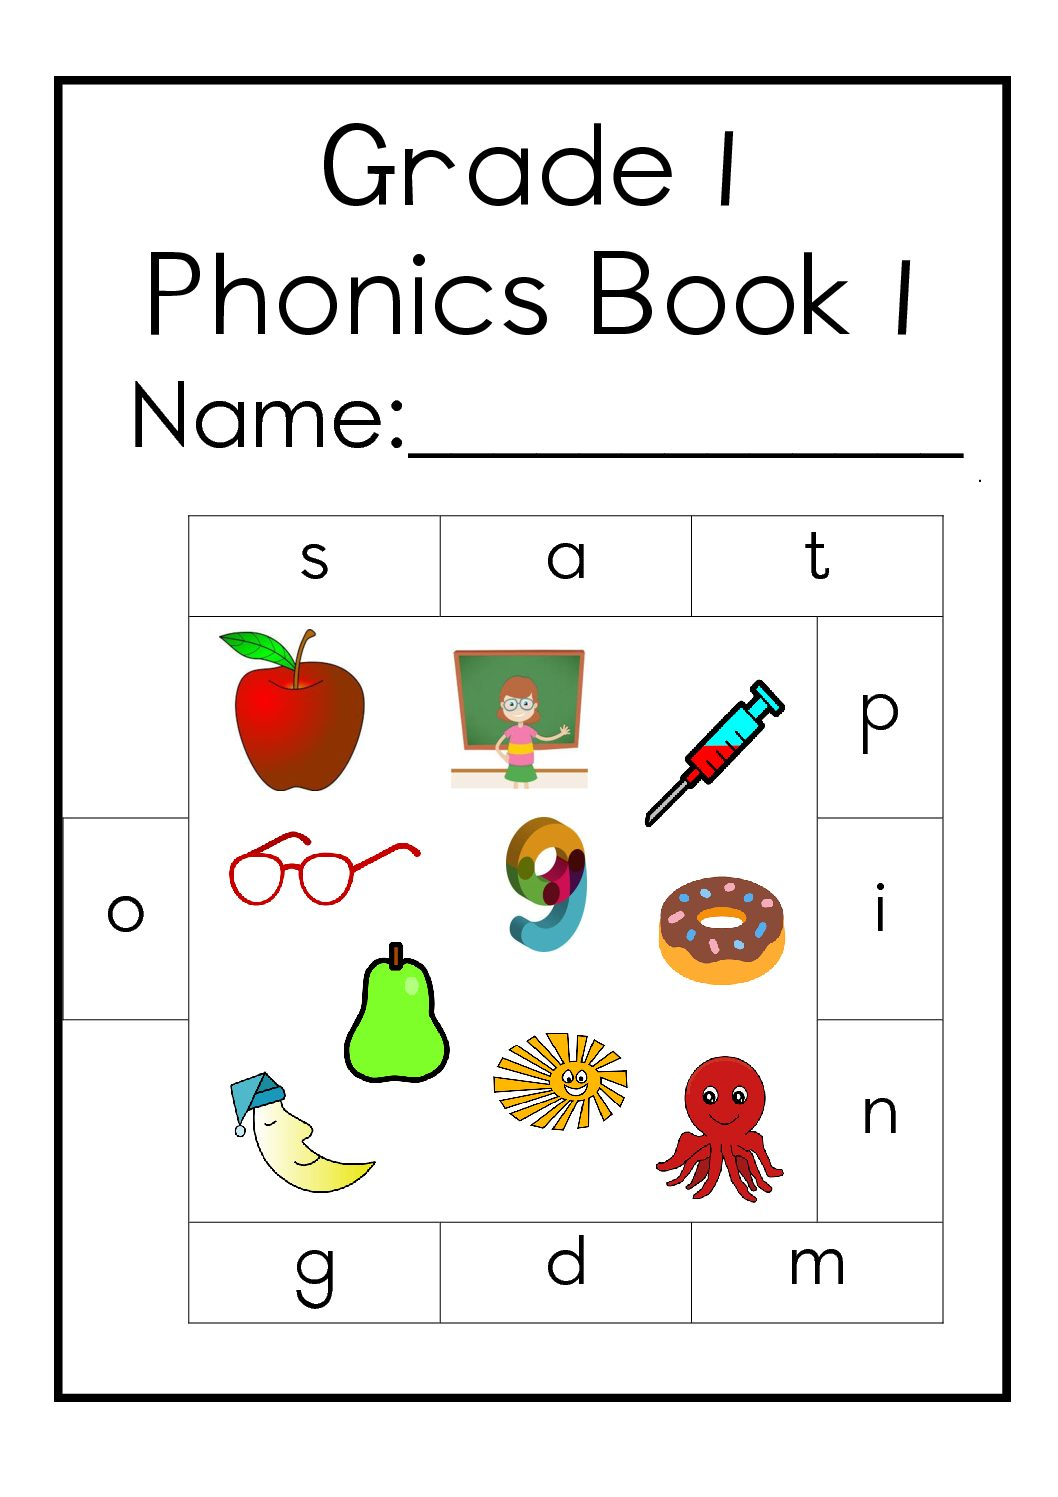 Grade 1 English Home Language Phonics Book 1